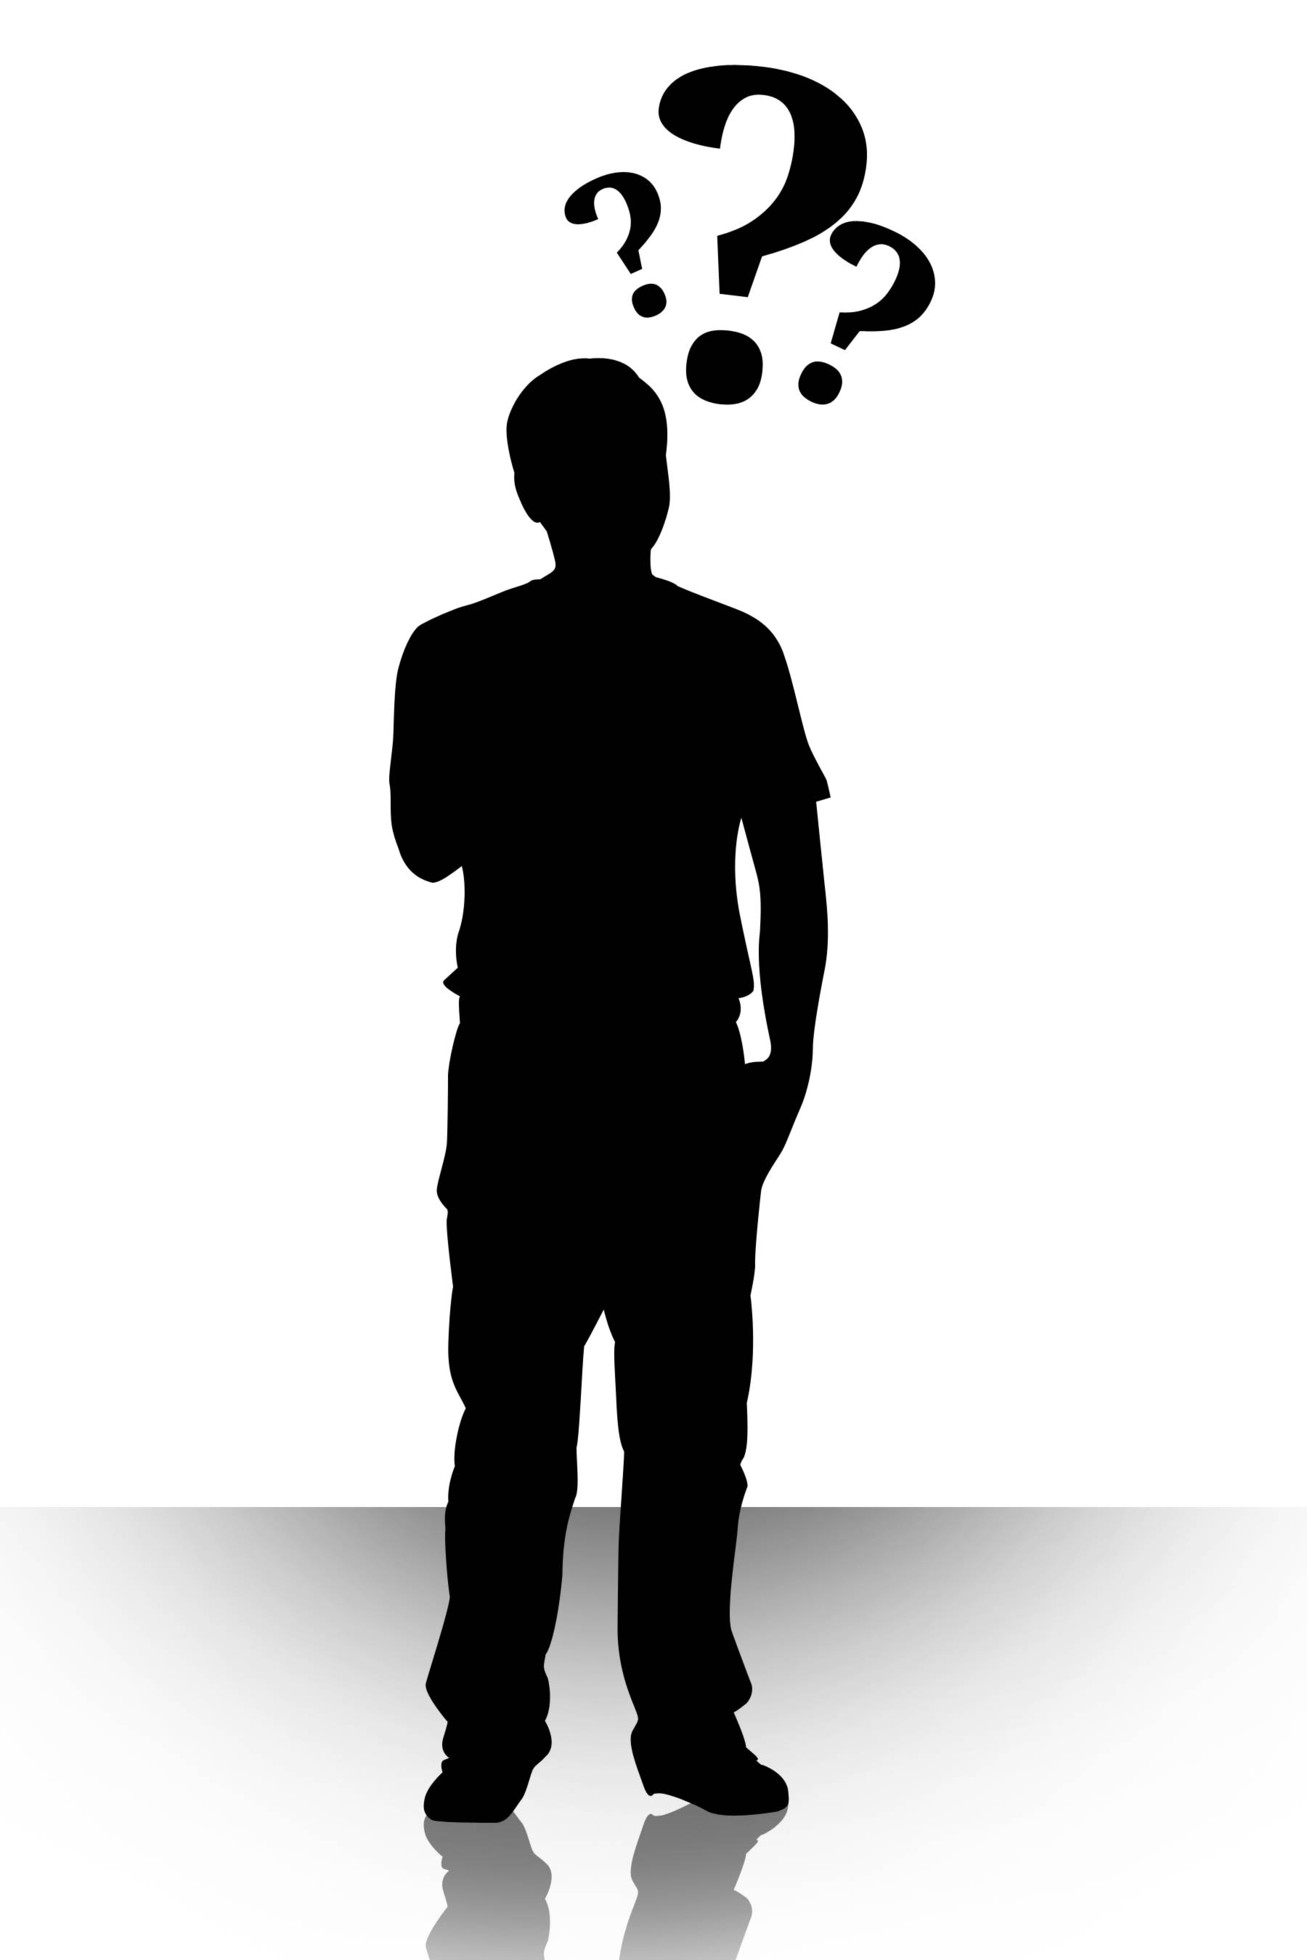 Thinking man silhouette free clipart clipart transparent library Free Man Thinking Clipart, Download Free Clip Art, Free Clip ... clipart transparent library